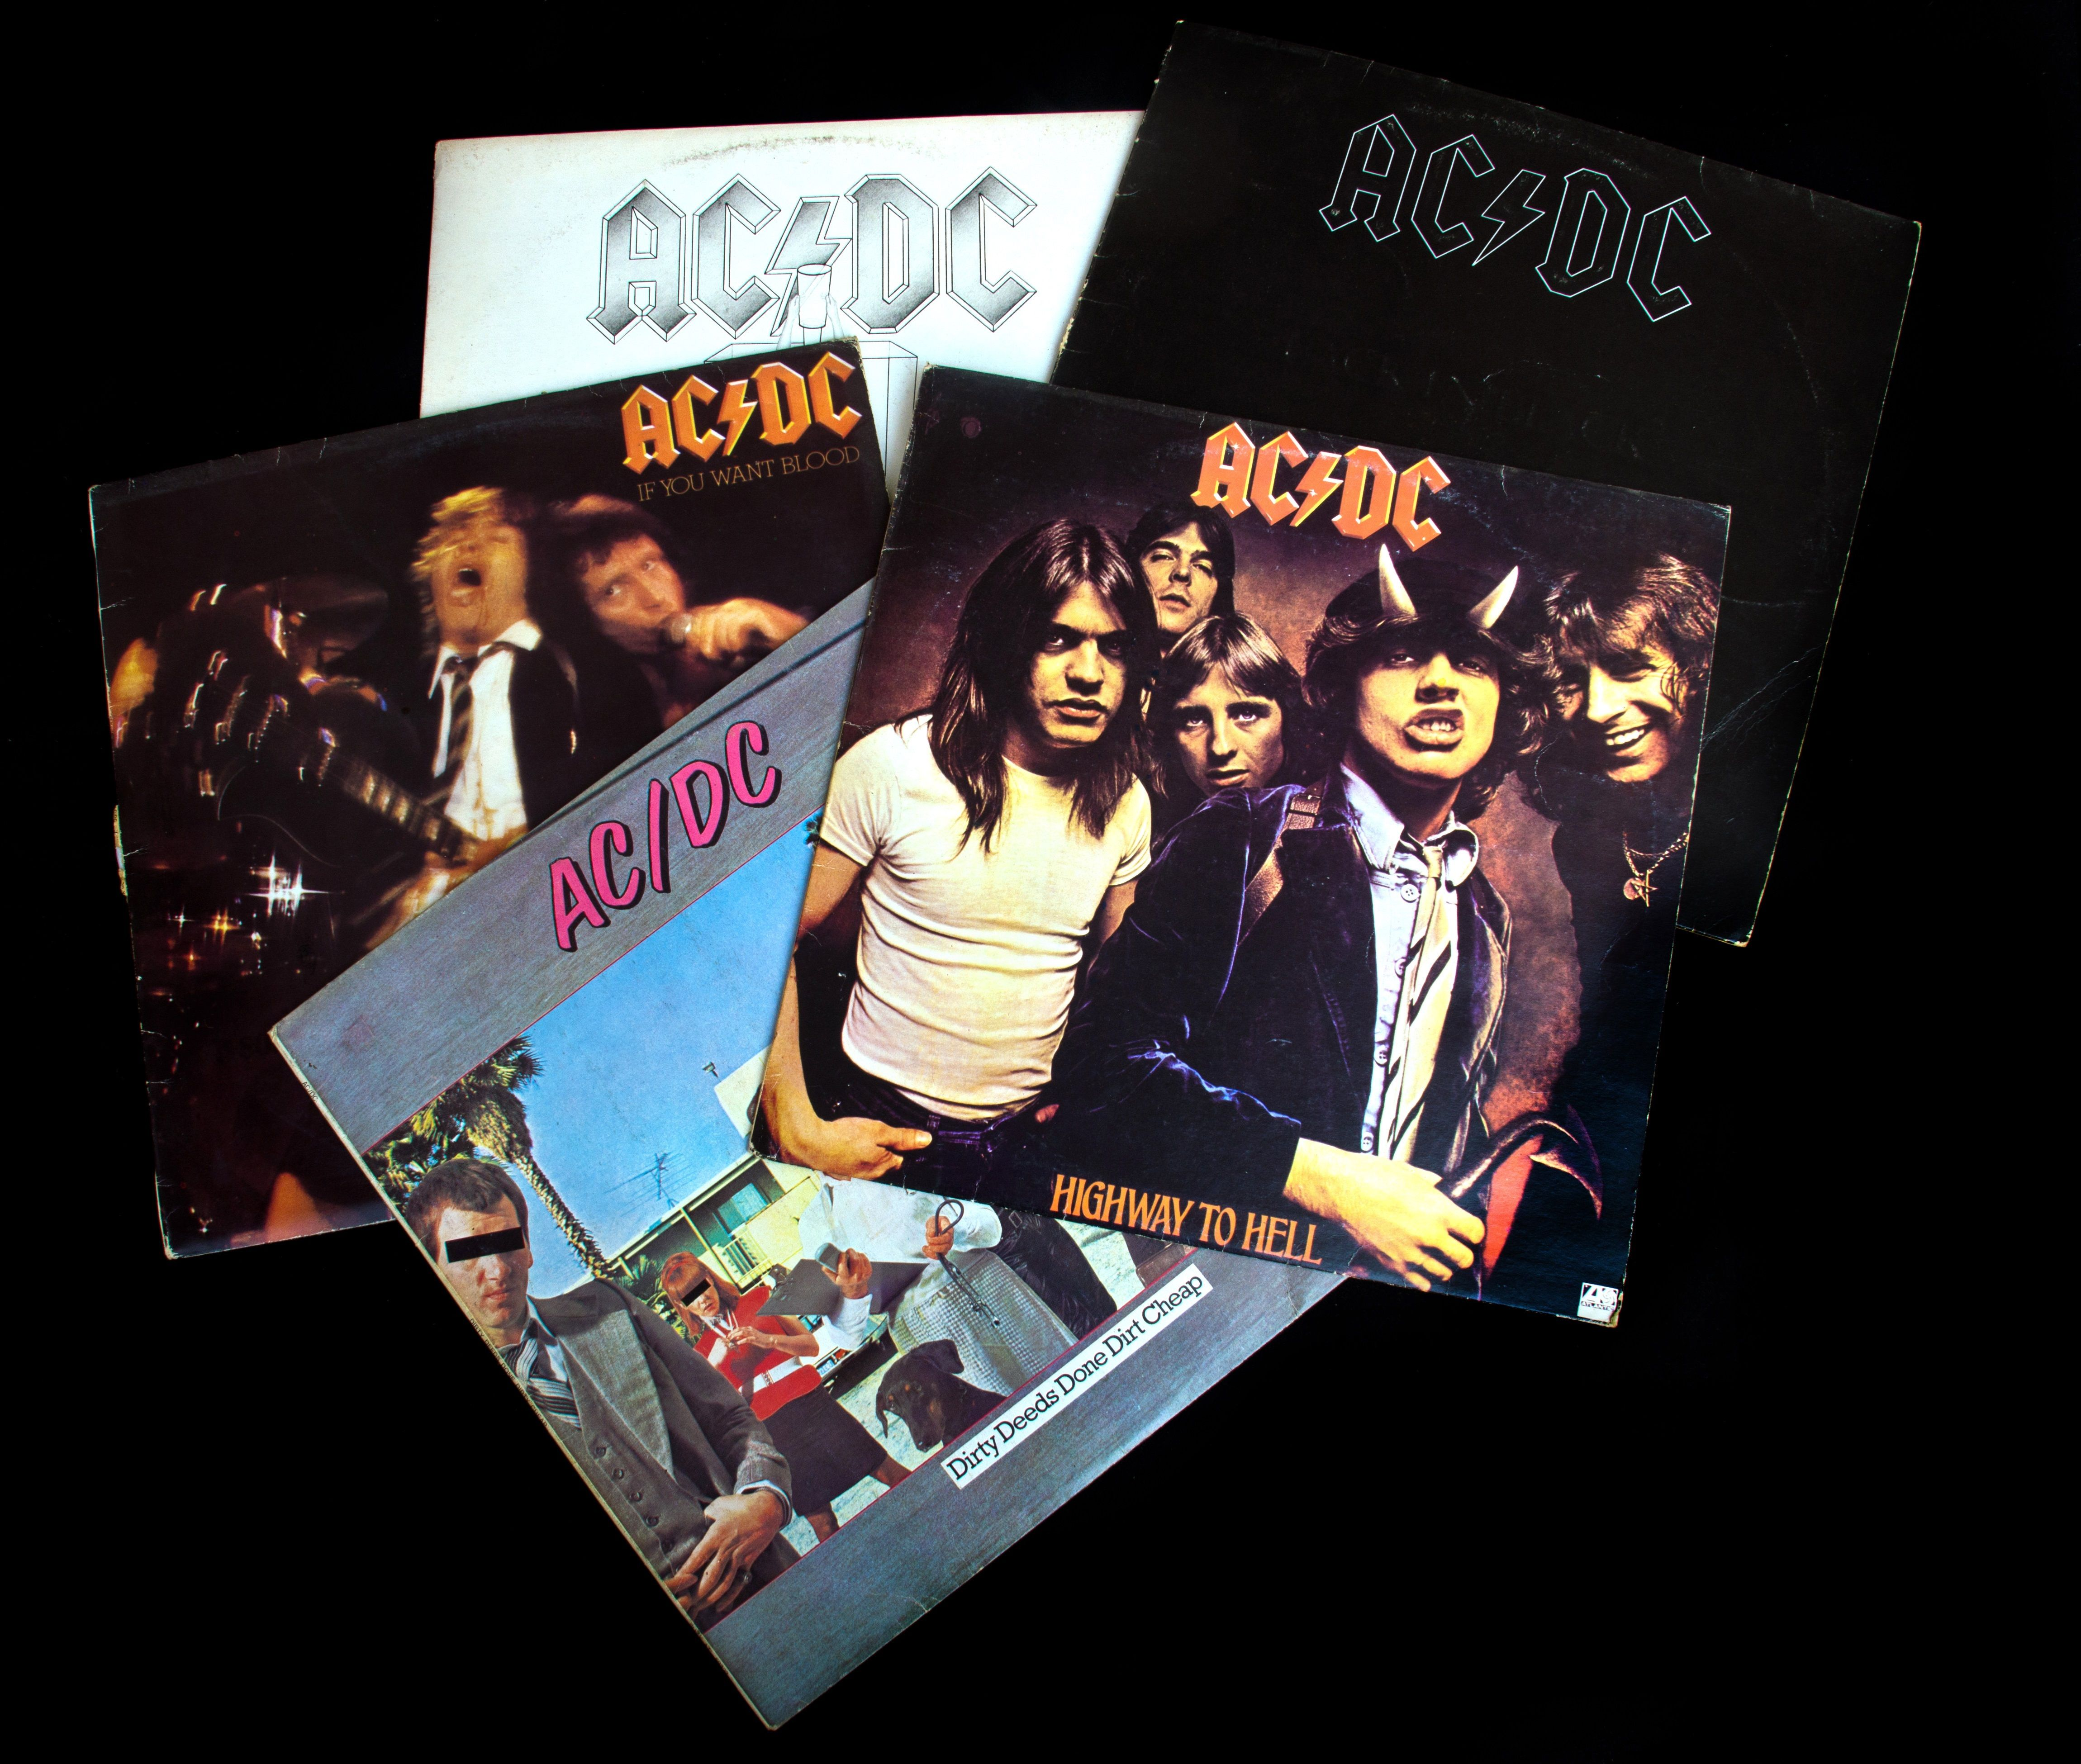 15 Things You Didn't Know About AC/DC